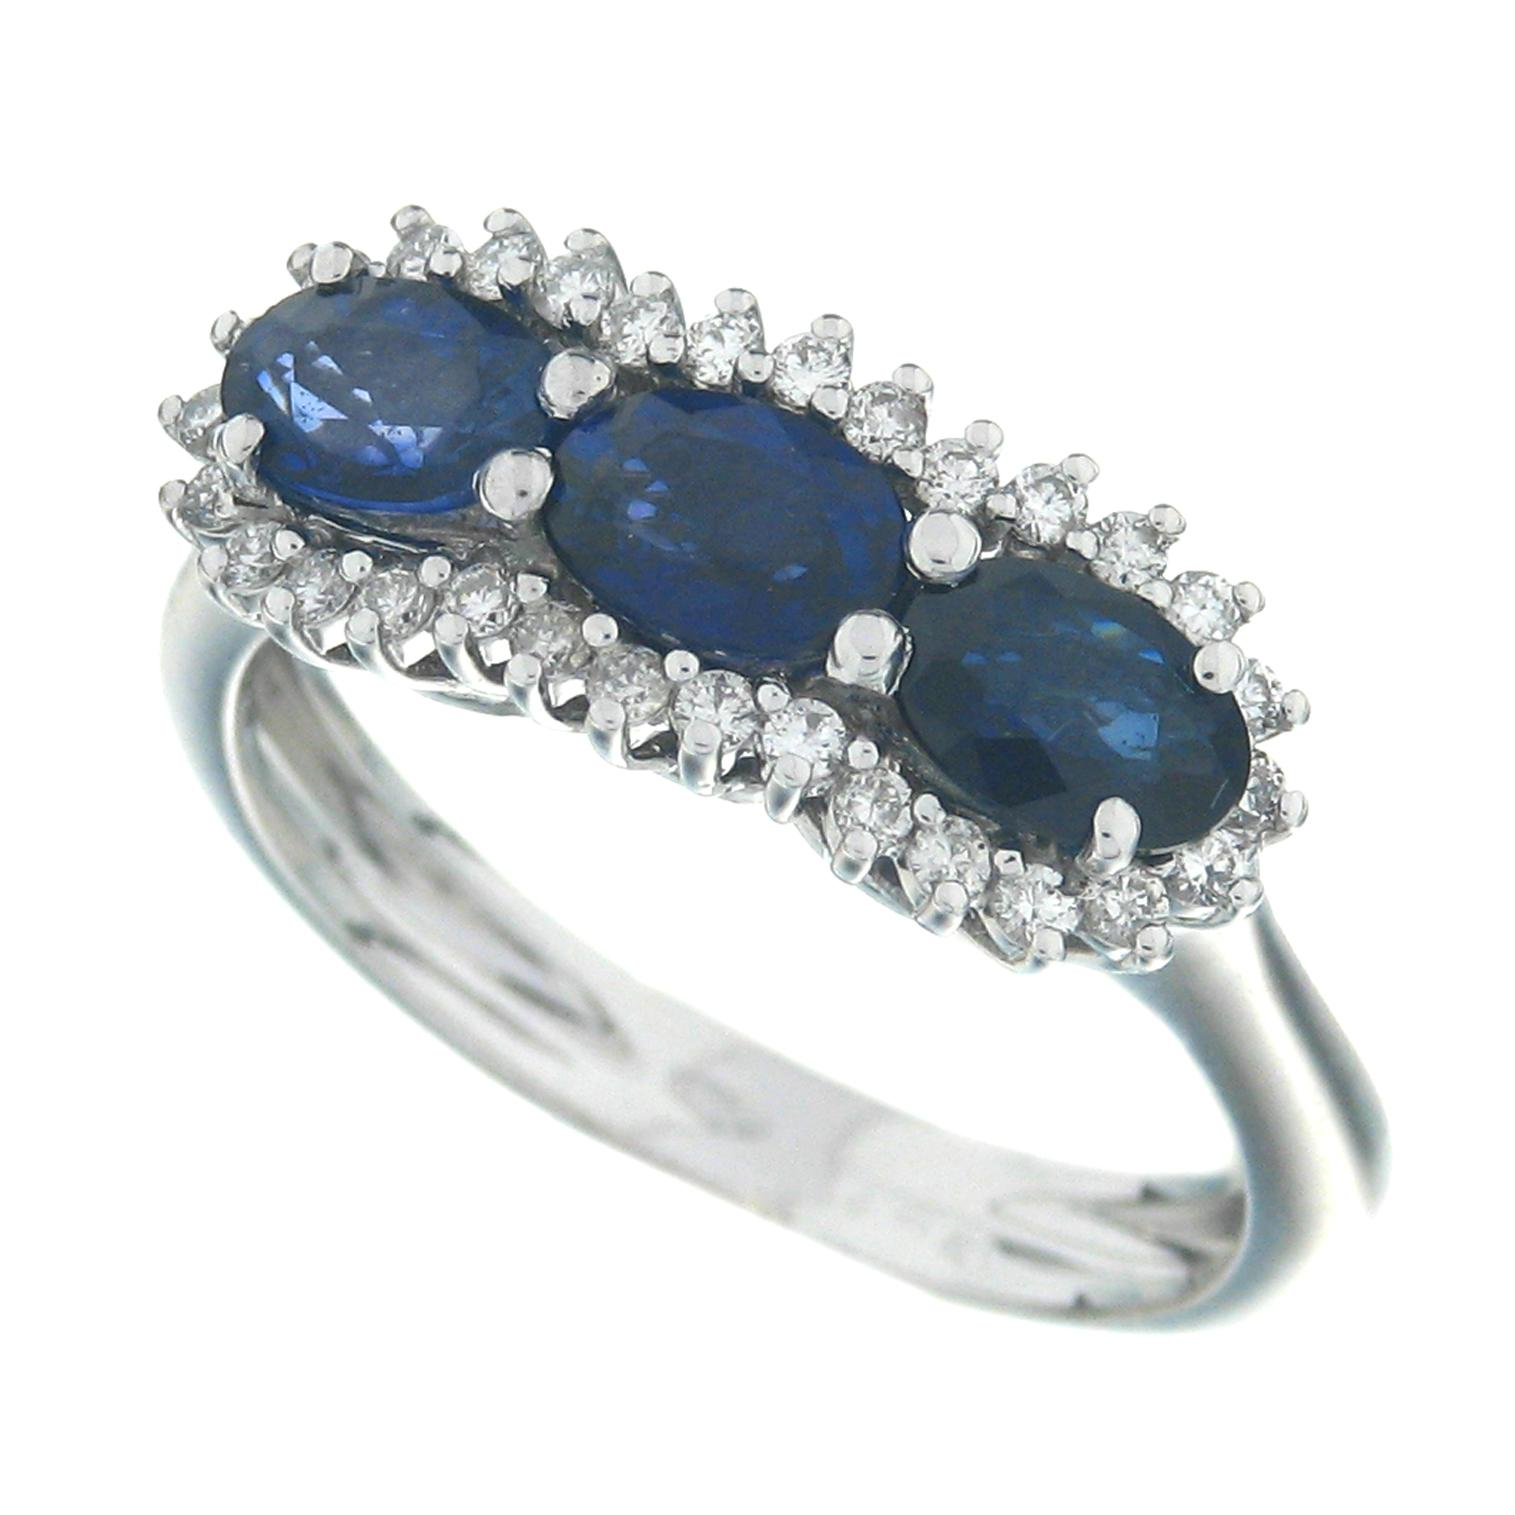 Gival 18ct White Gold Diamond & Sapphire Ring 3892